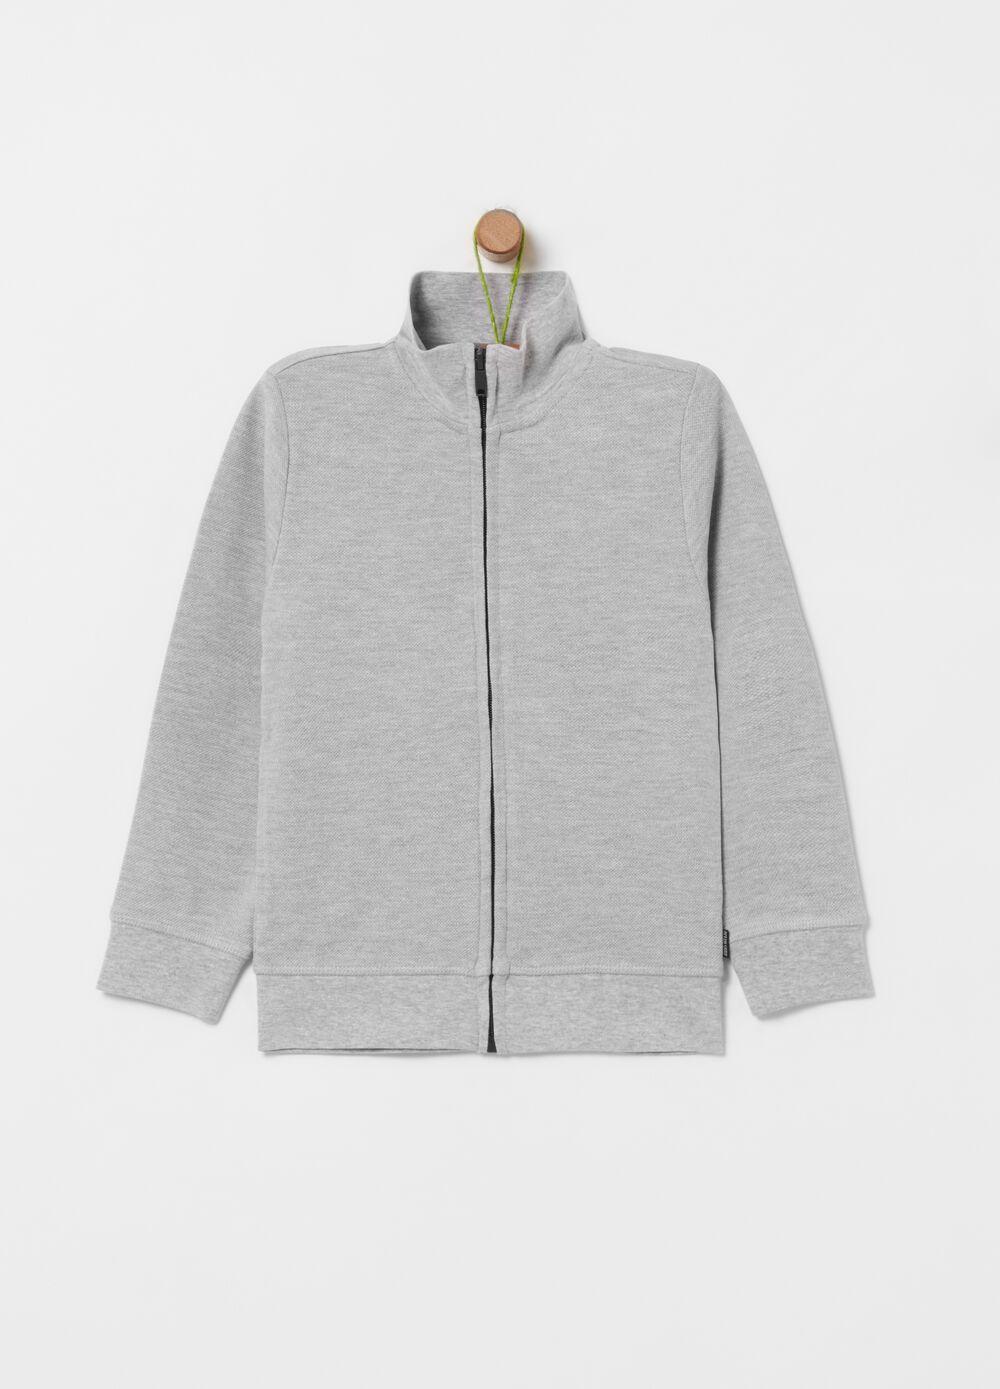 Organic cotton and viscose full-zip sweatshirt with high neck